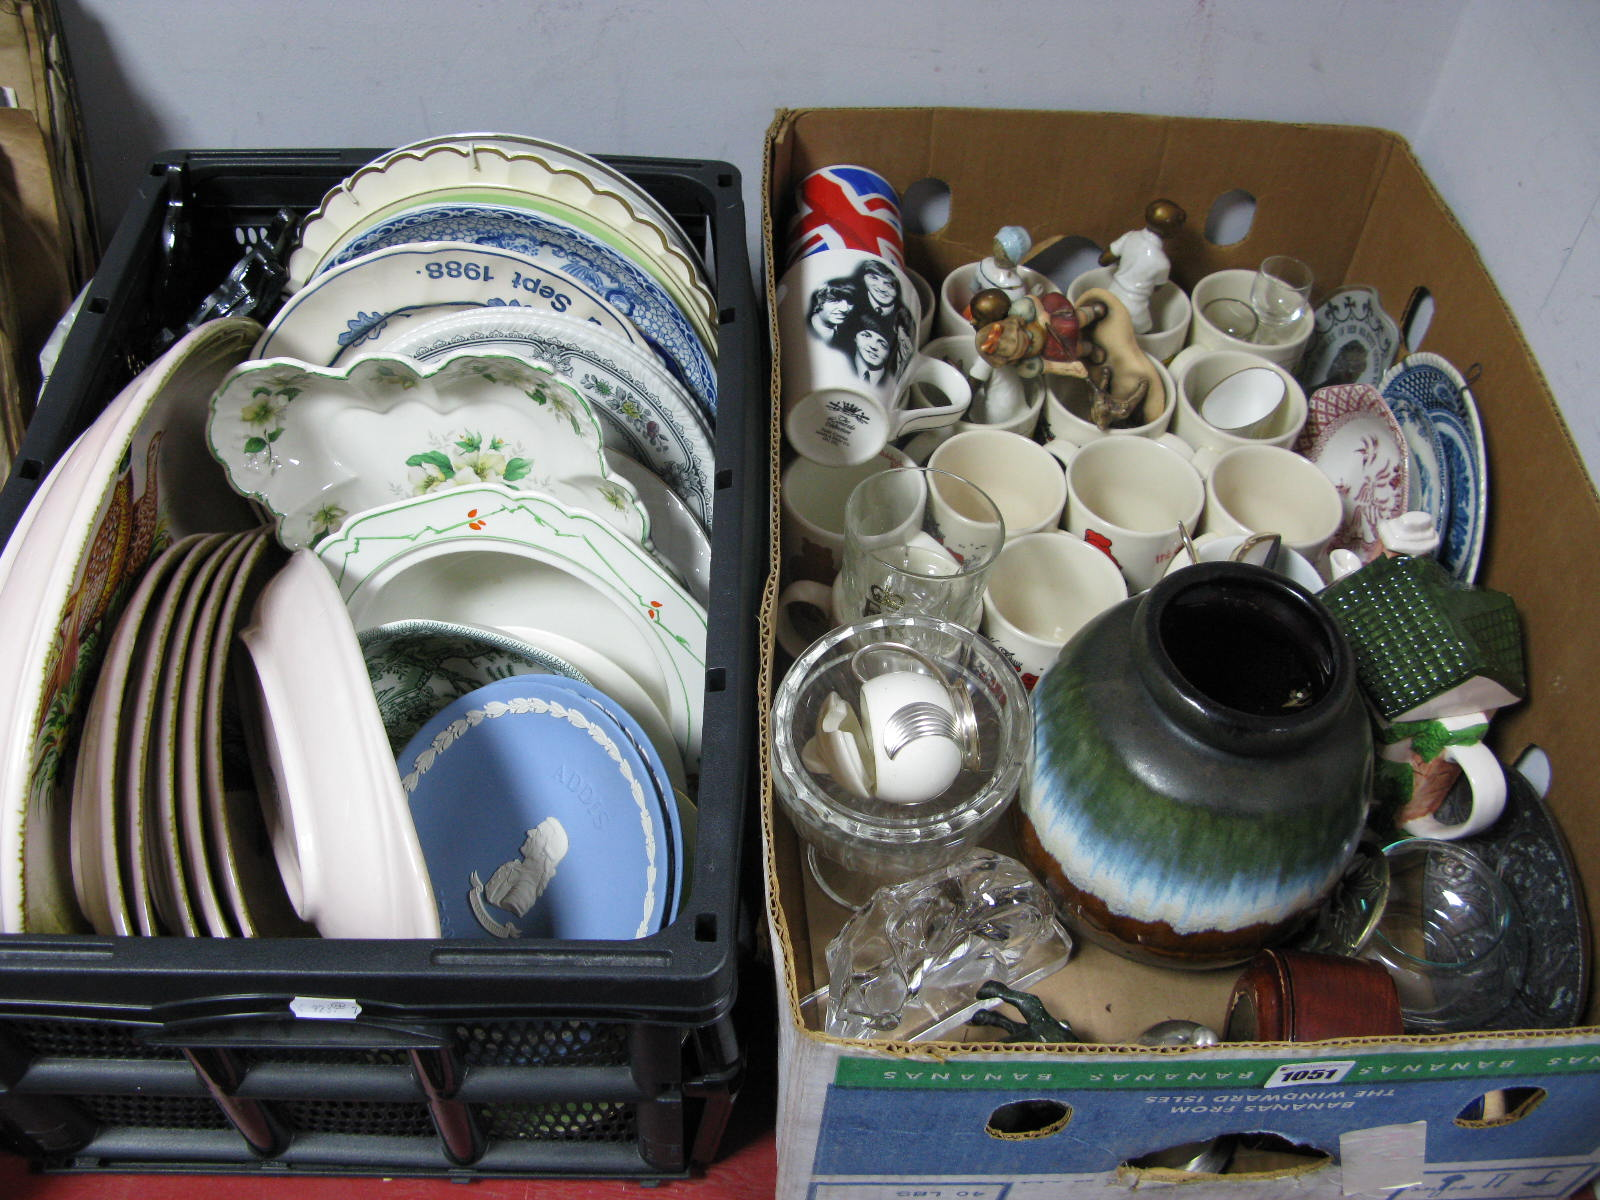 Lot 1051 - A Quantity of Plates, including Wedgwood, Old Foley, Denby Dales, West Germany vase, '248-19', mugs,